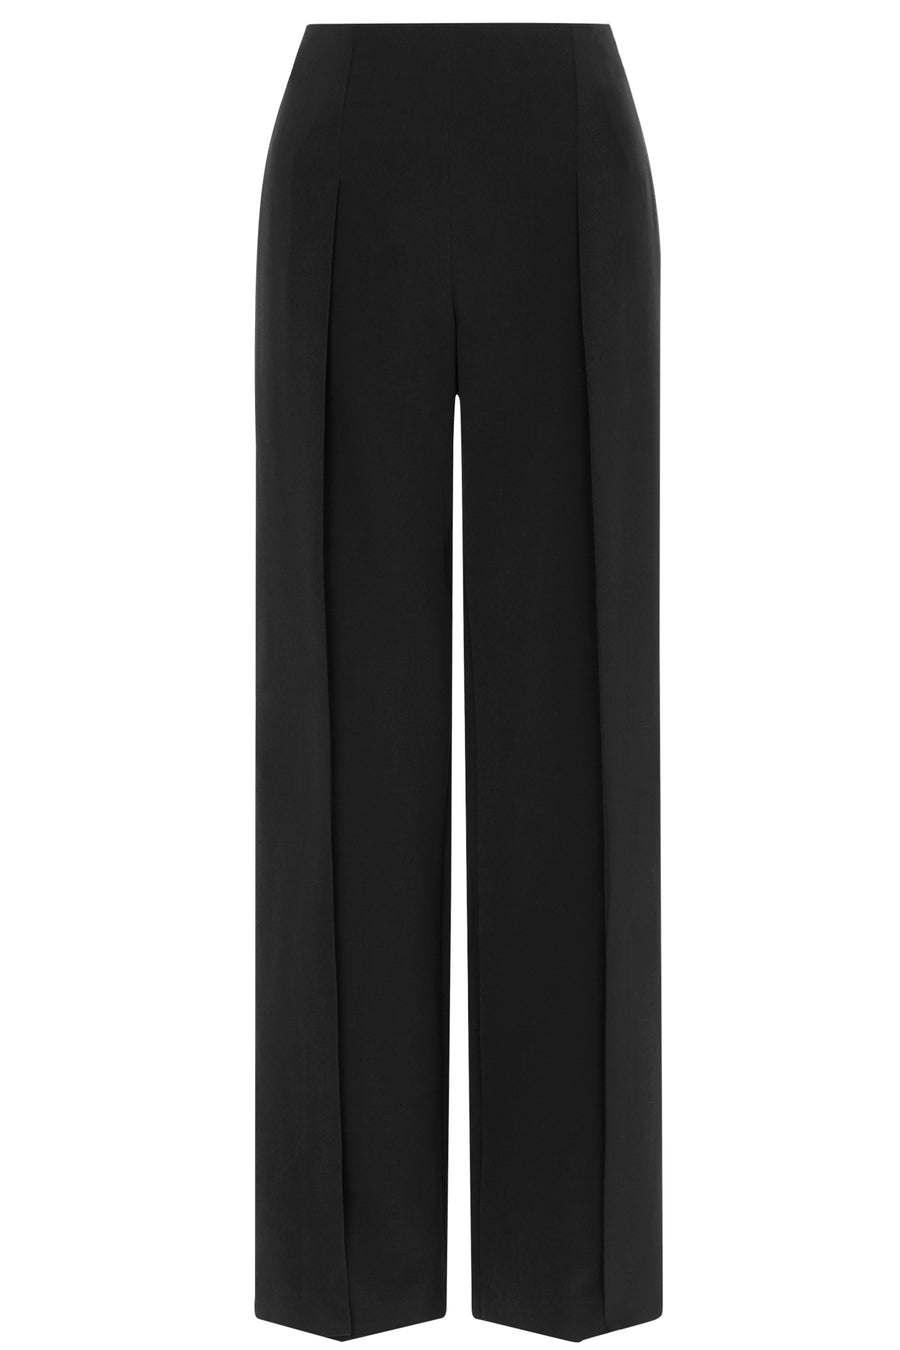 Fenchurch Black Suiting Trousers